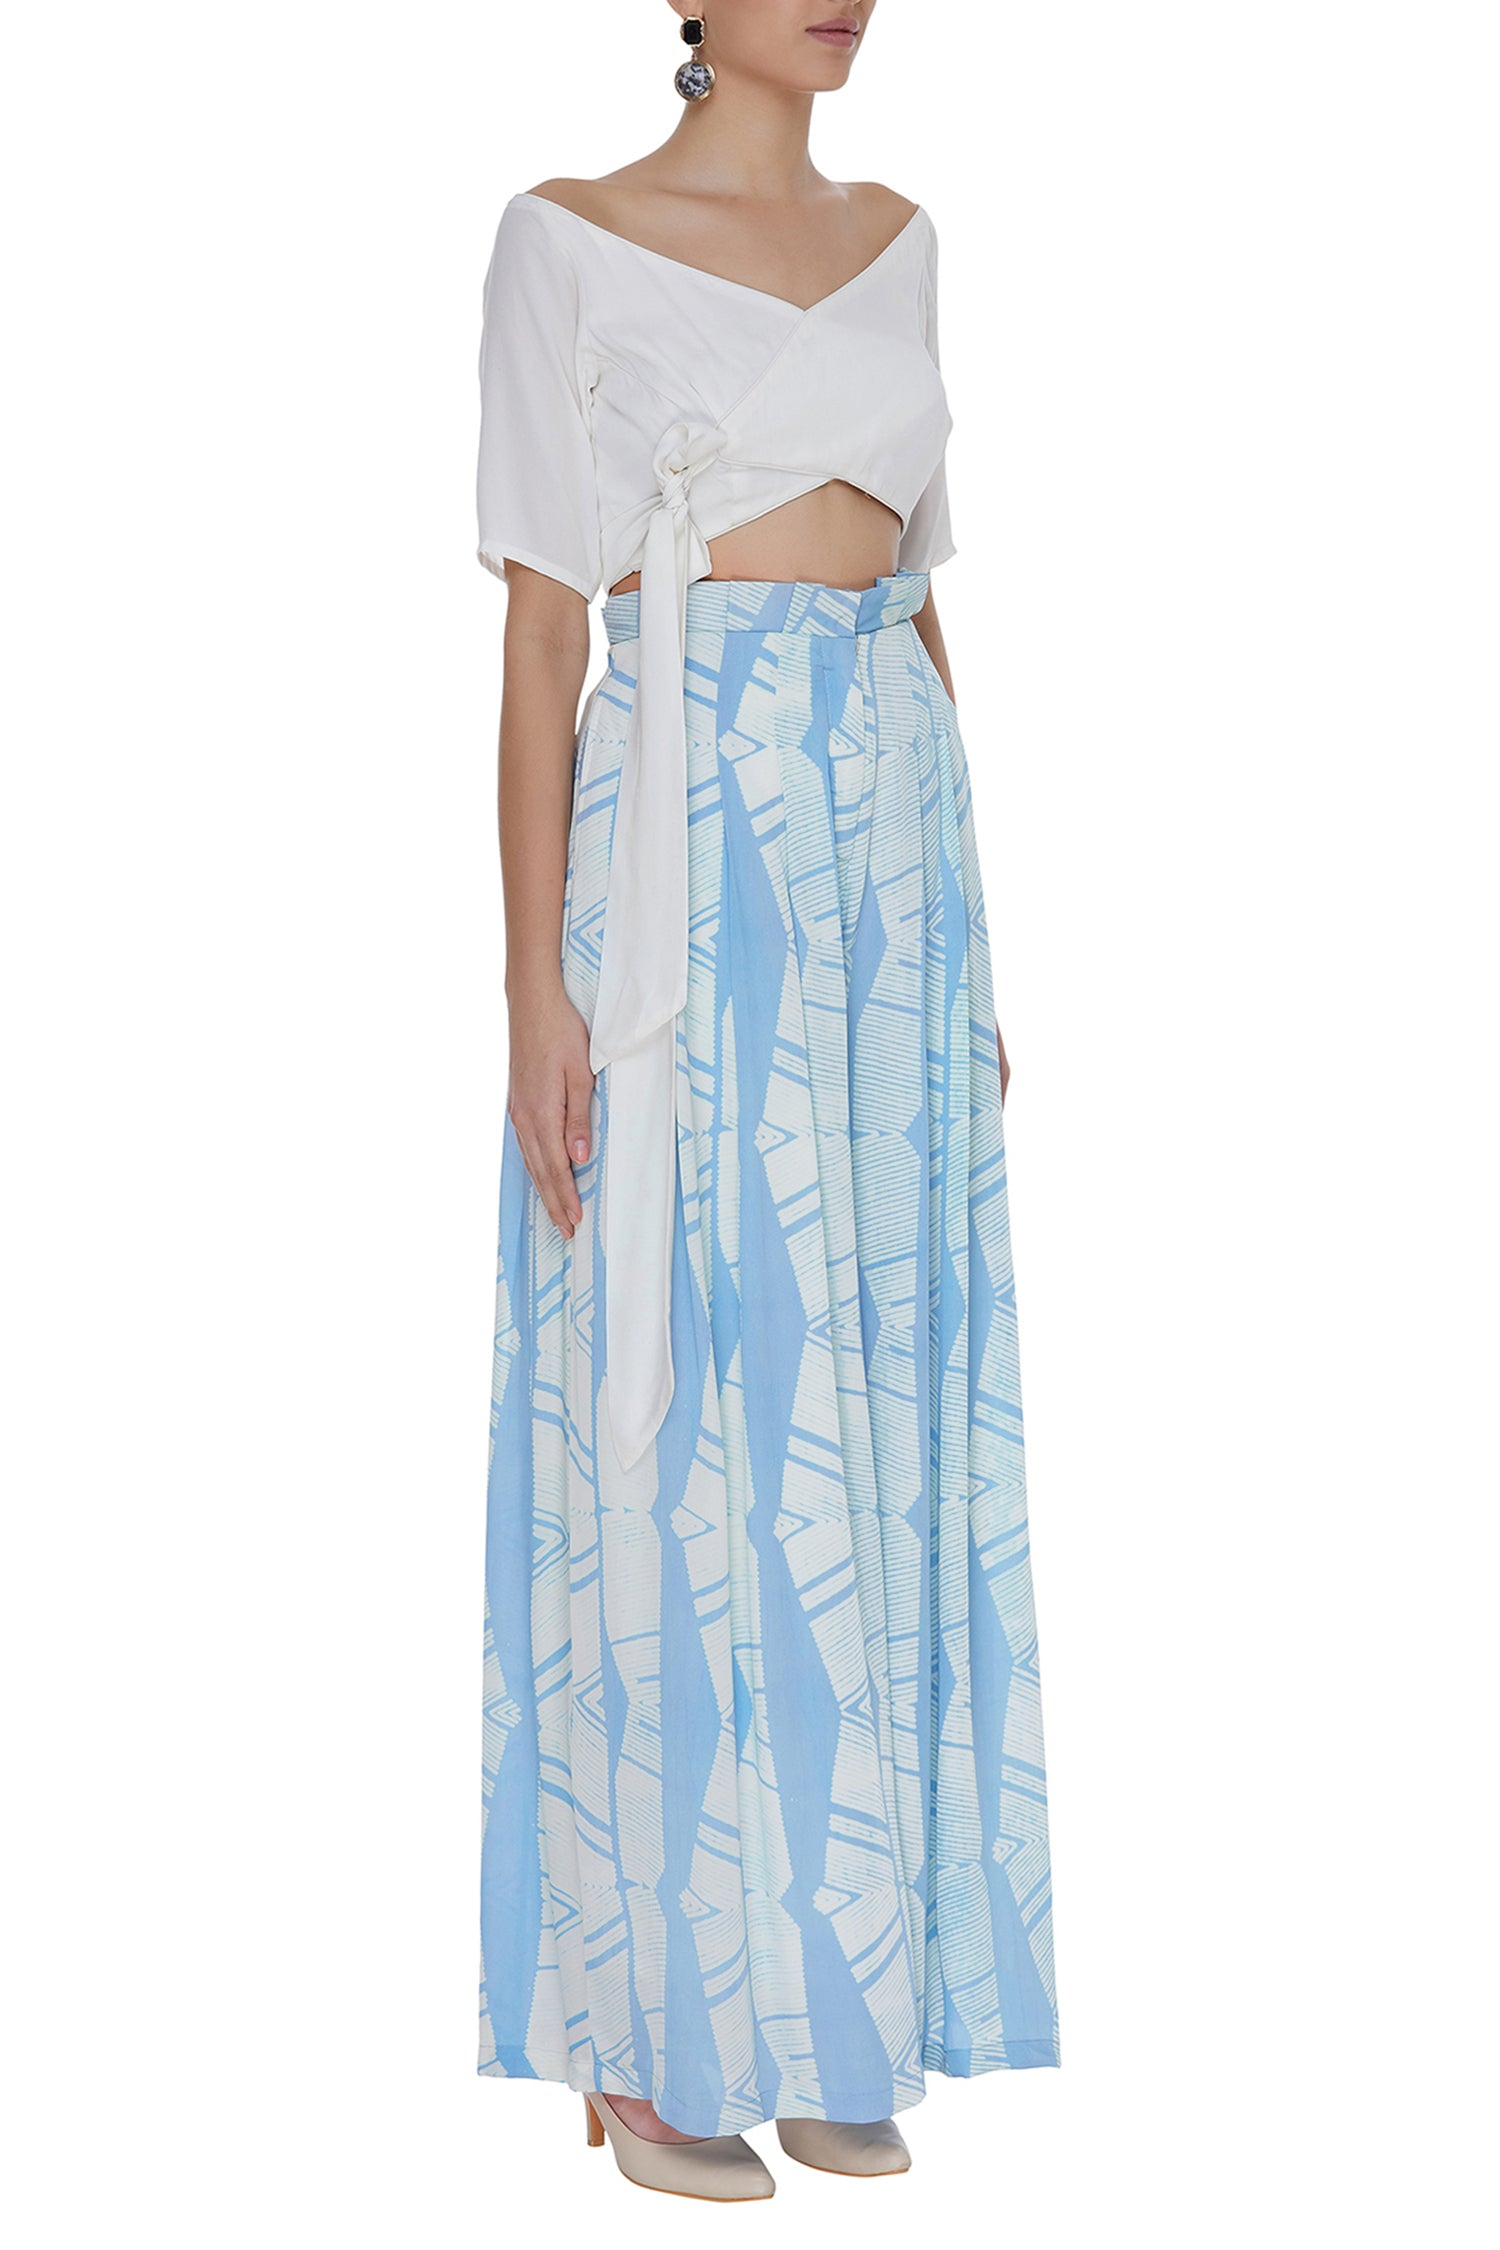 Overlap Tie-Up Top With Block Printed Pleated Pants